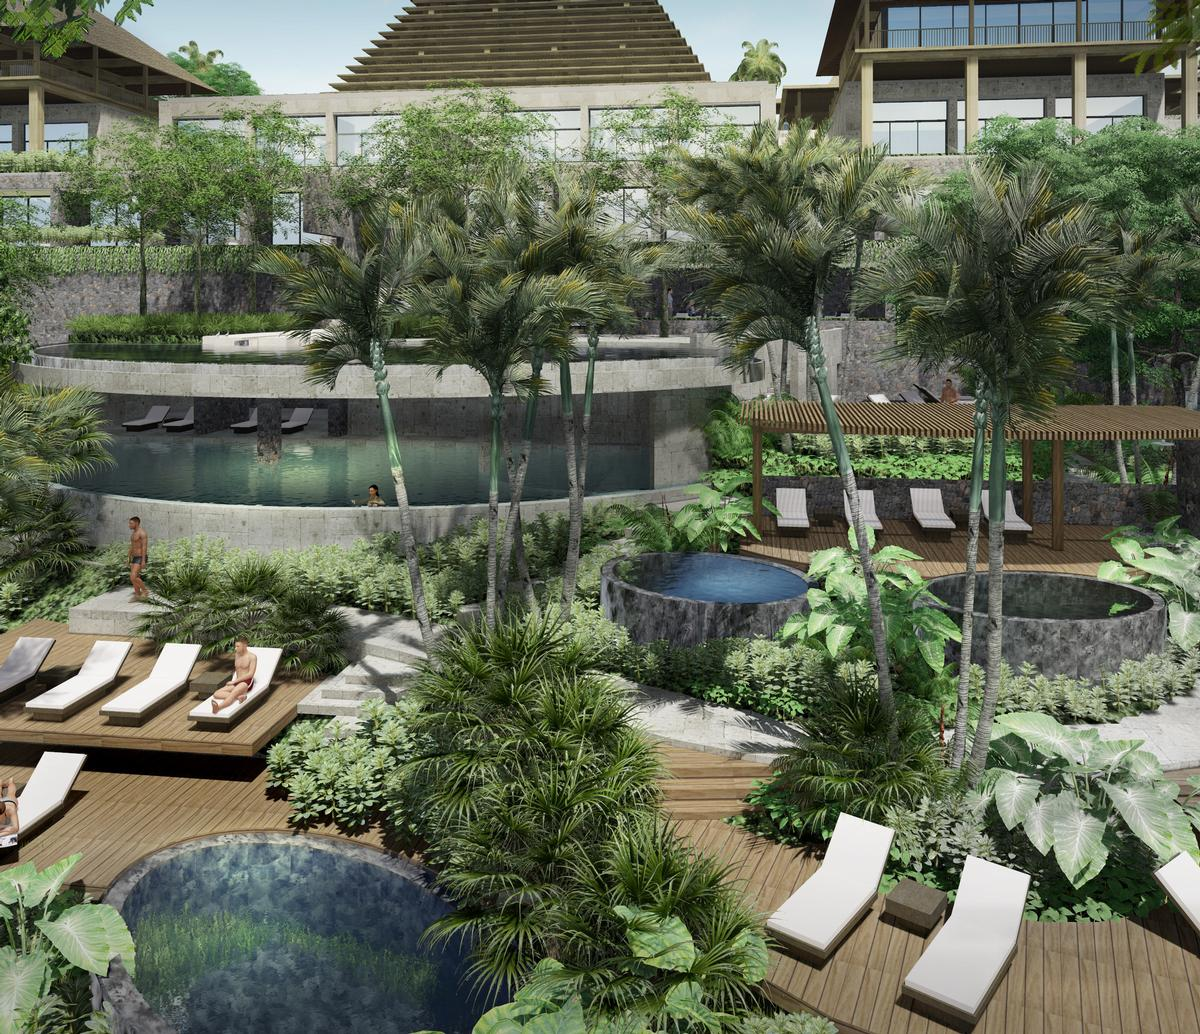 GOCO Retreat Ubud will include a wellness centre with 45 treatment rooms, as well as an extensive outdoor rainforest bathing area